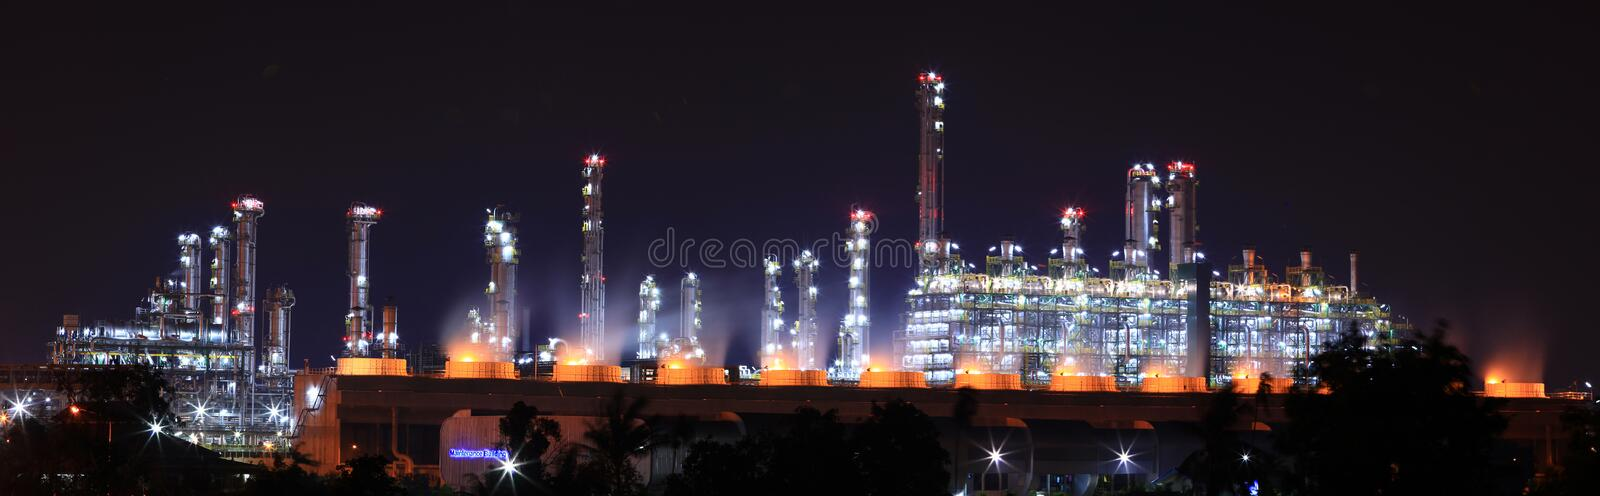 Oil refinery plant. Panoramic view of oil refinery plant at night royalty free stock photography